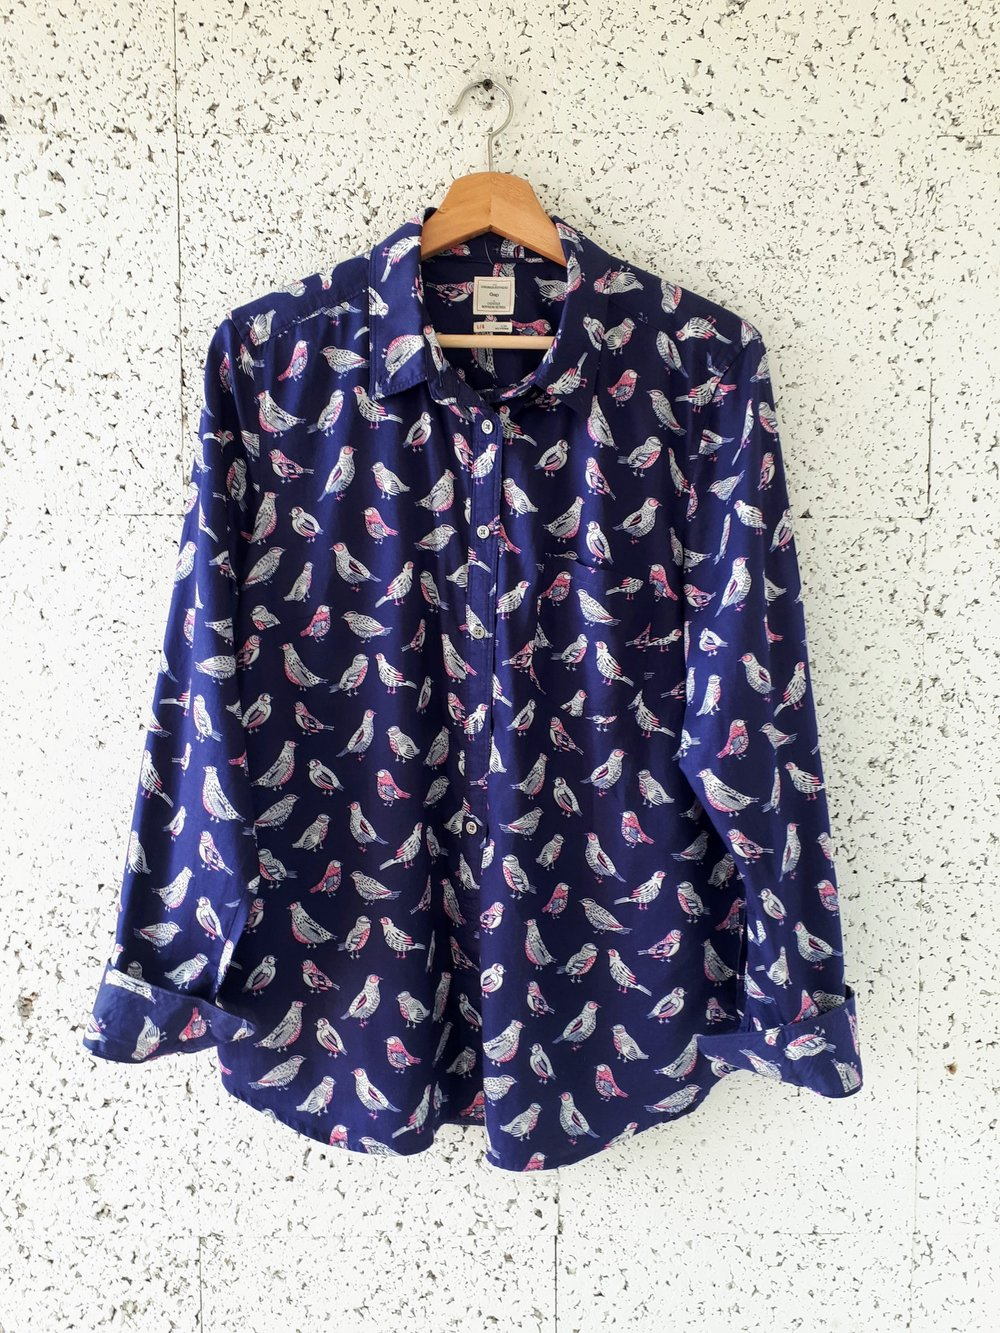 Gap shirt; Size L, $28